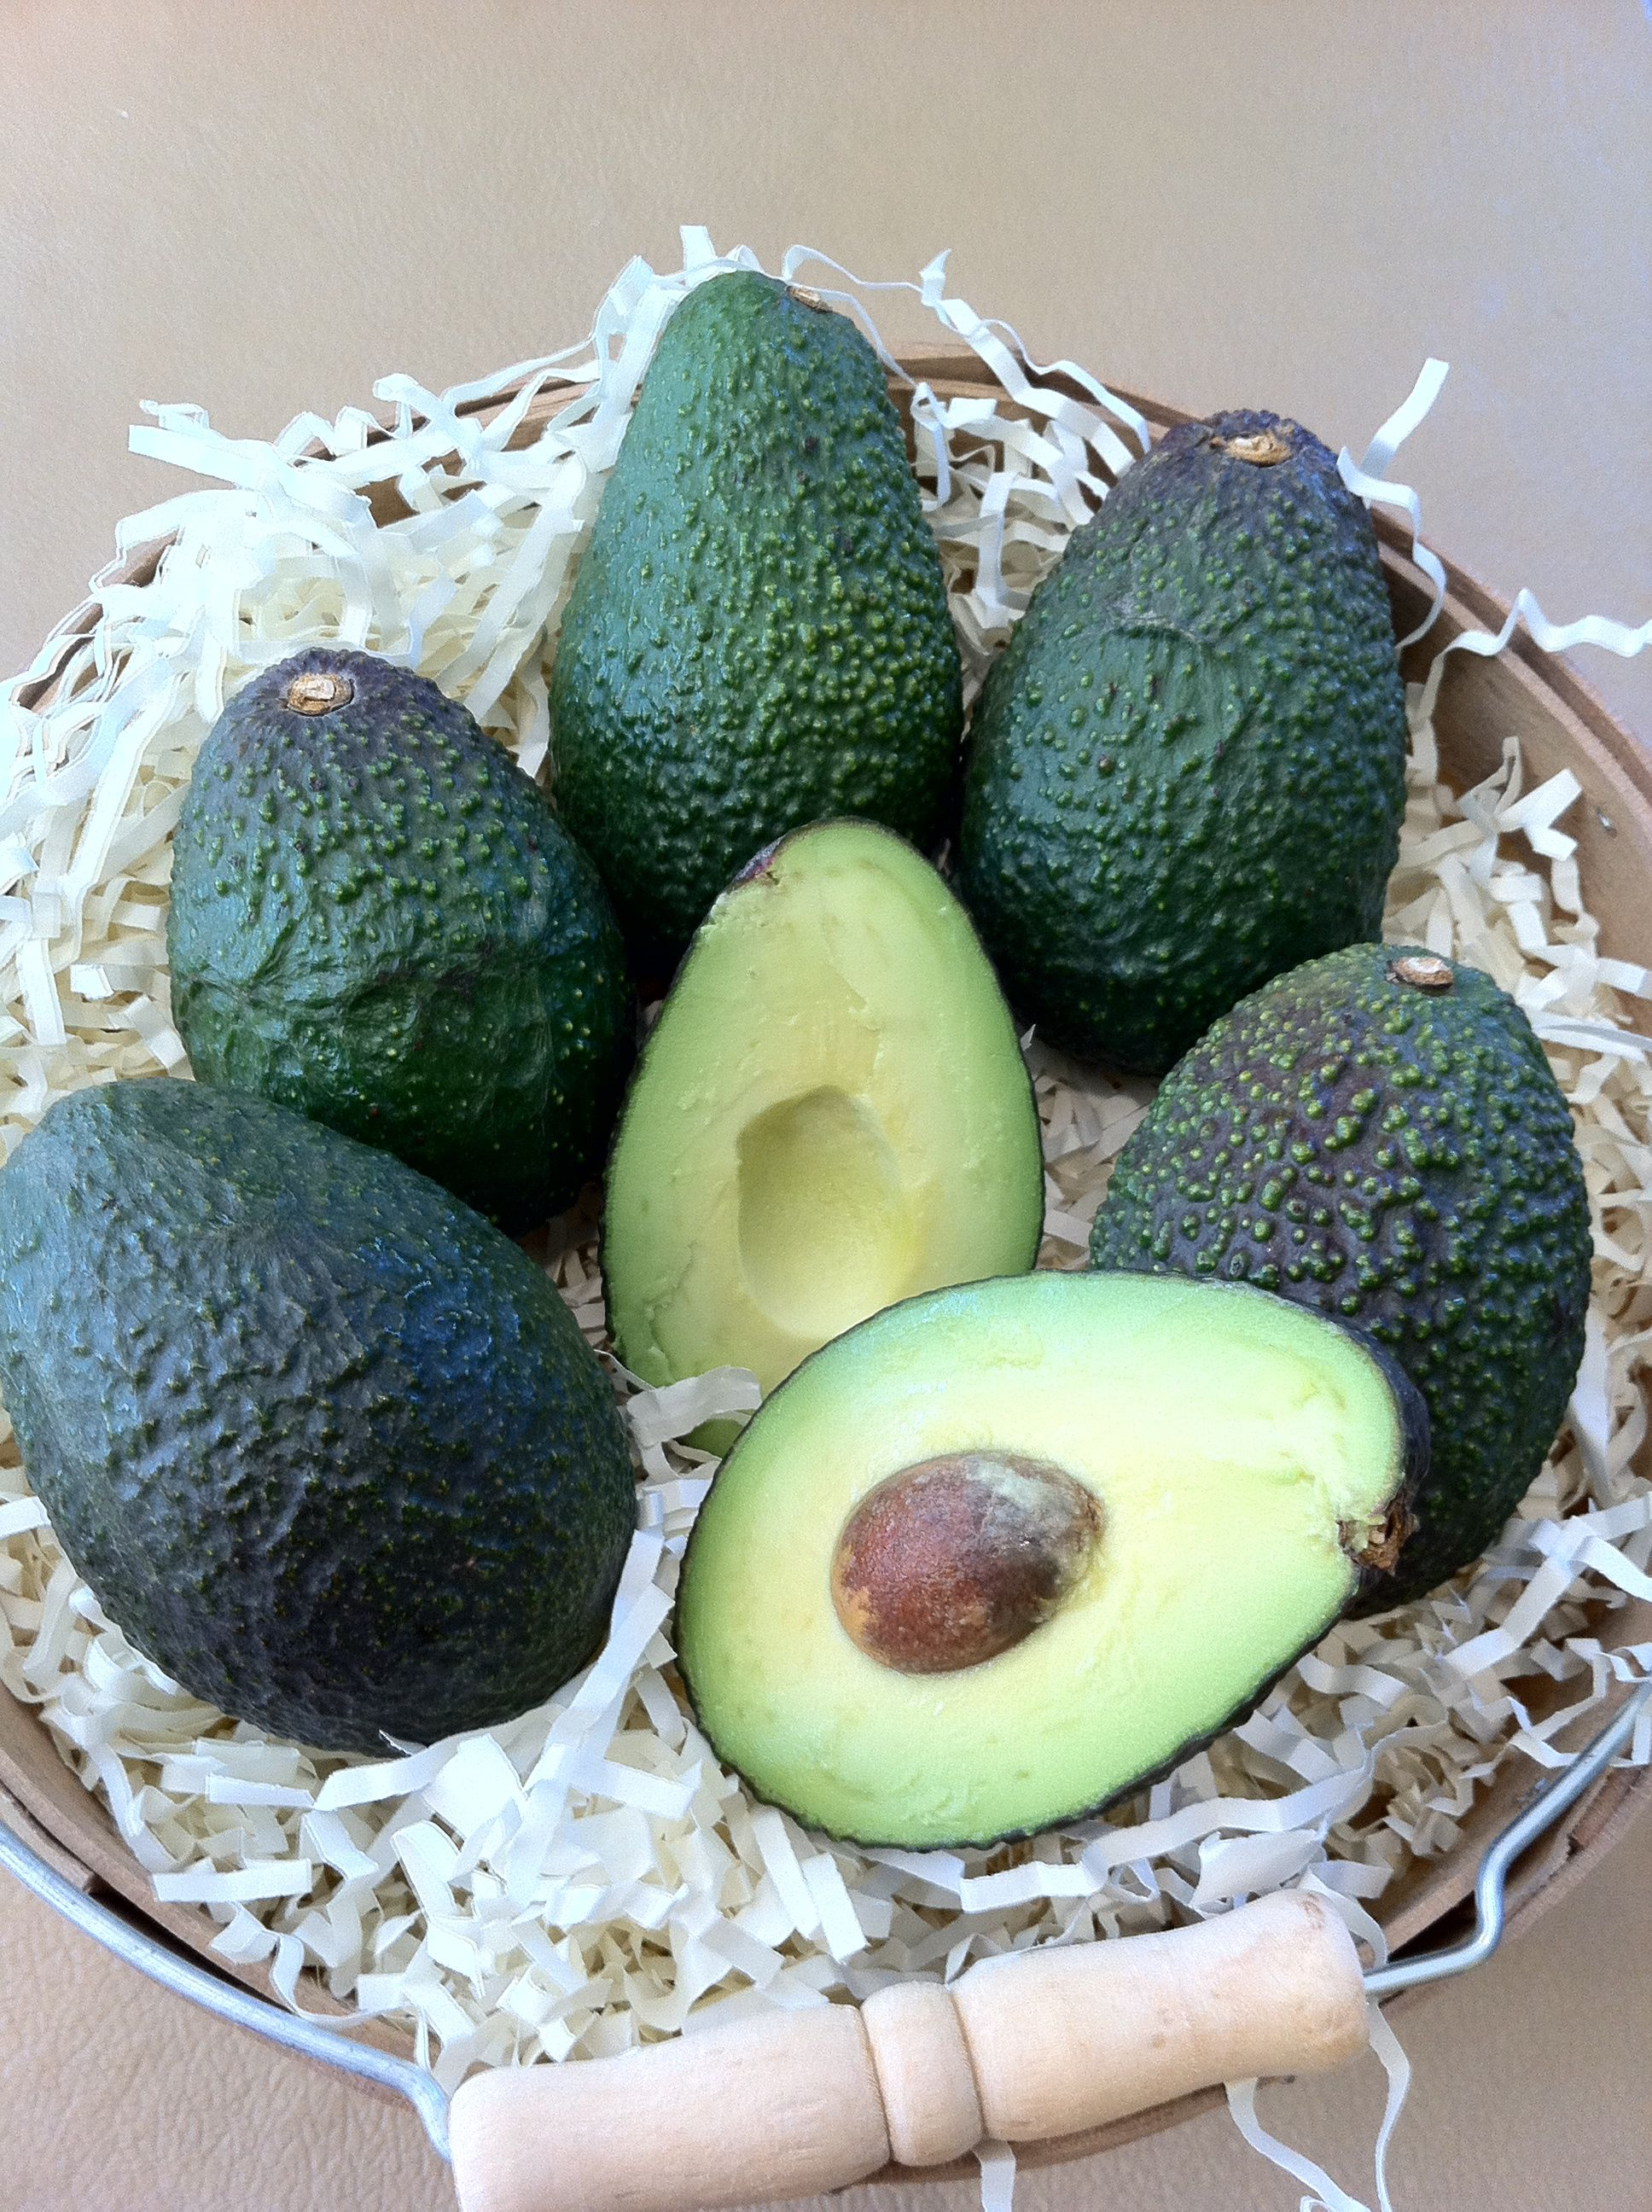 Who wants ONE when you can have a BUSHEL FULL from the Avocado Diva?!